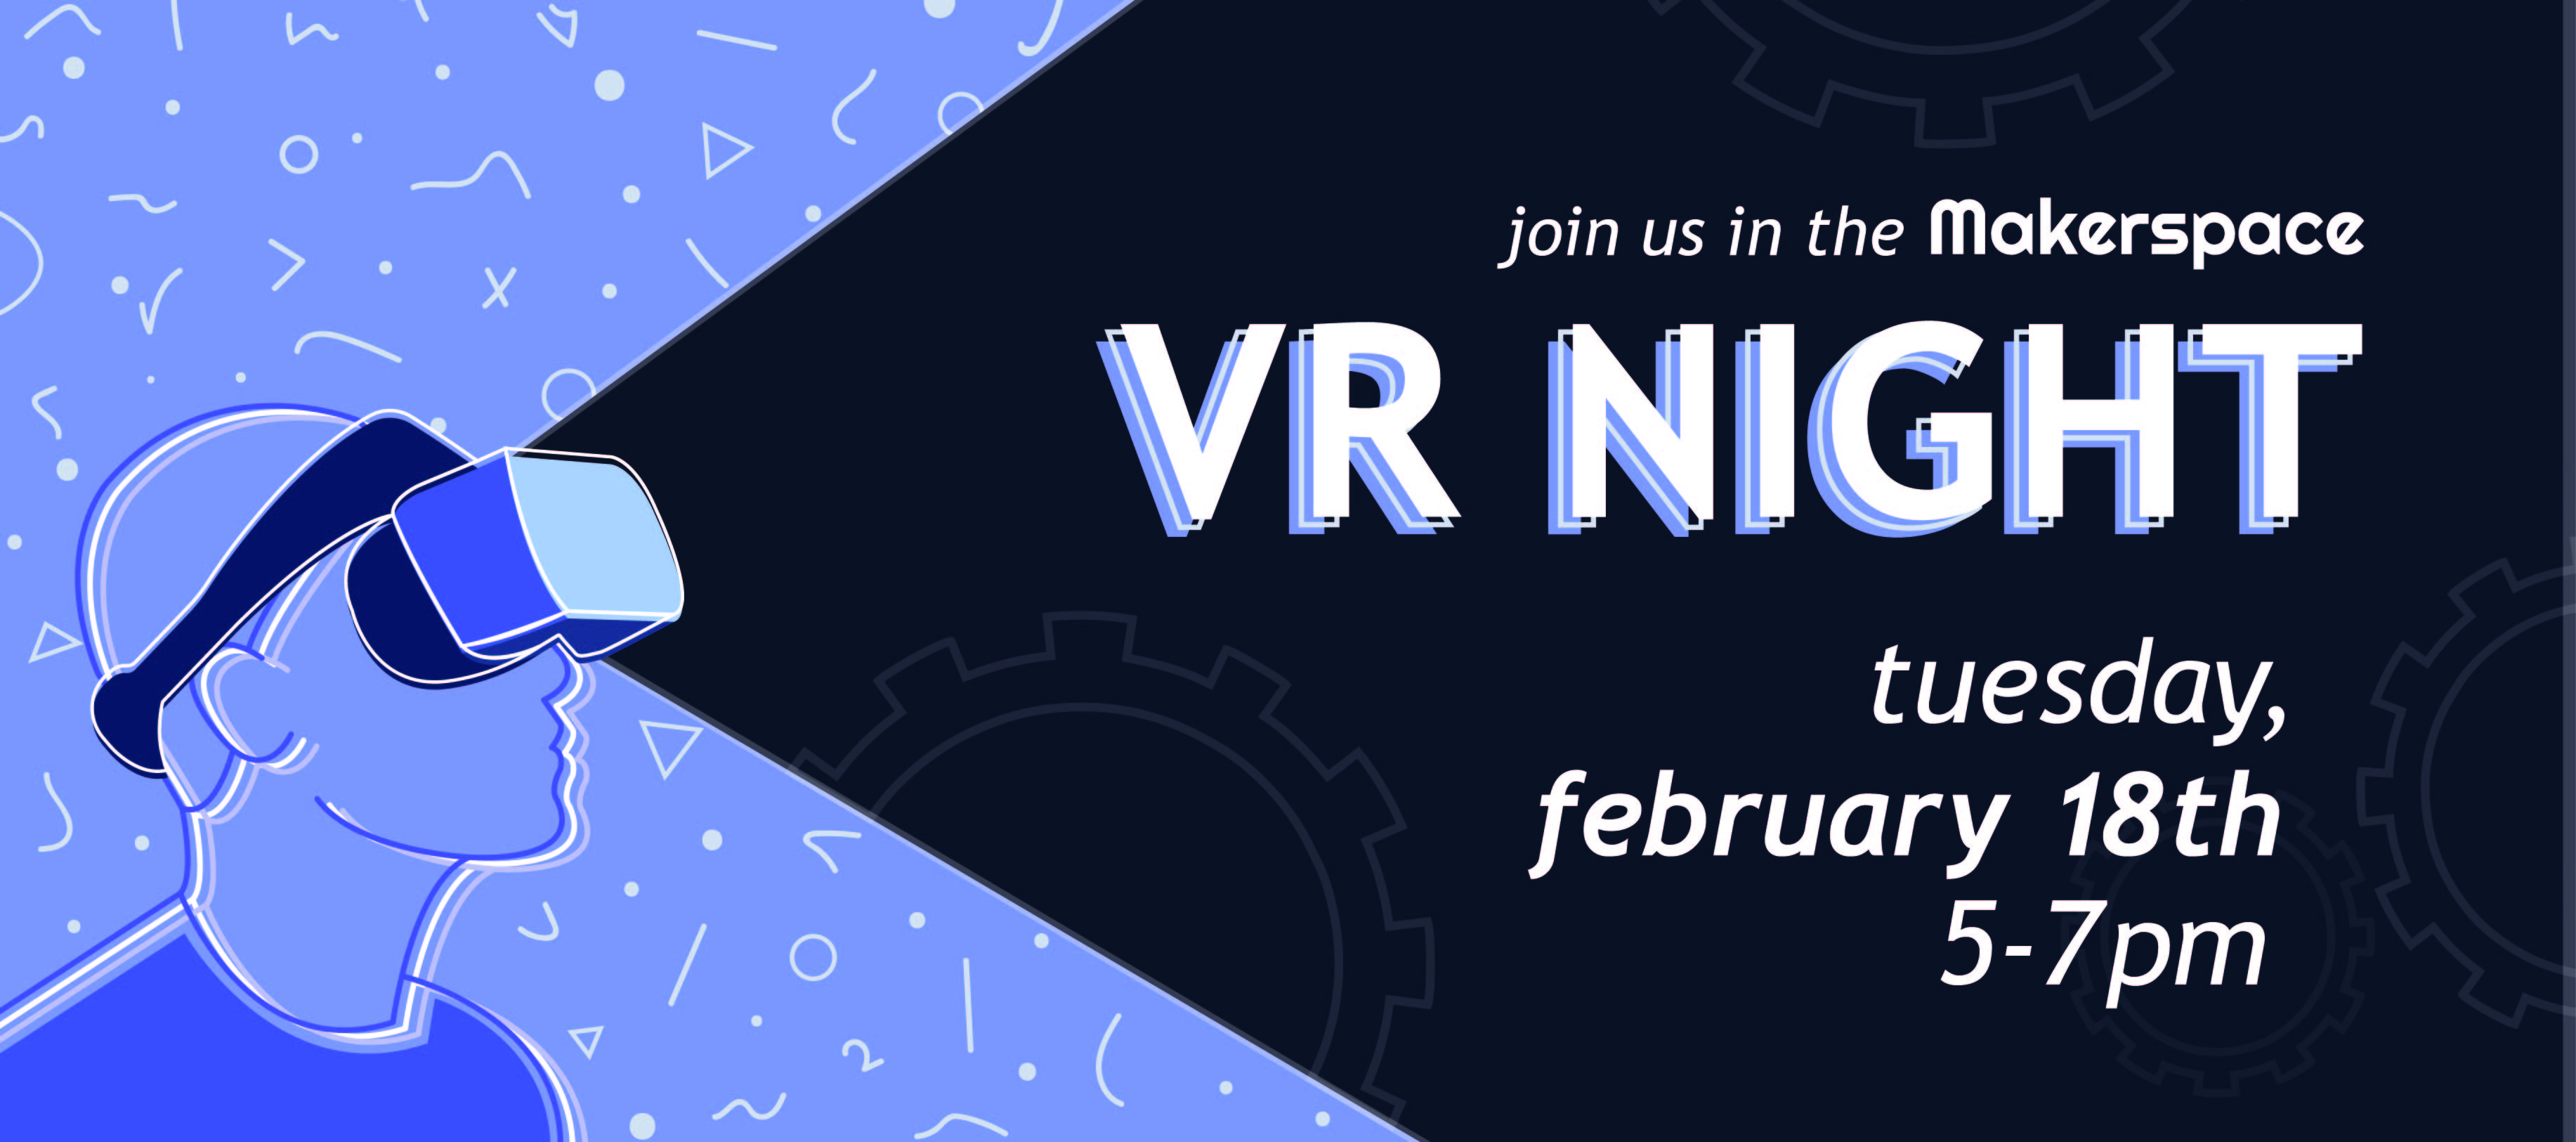 Virtual Reality Night in the Makerspace